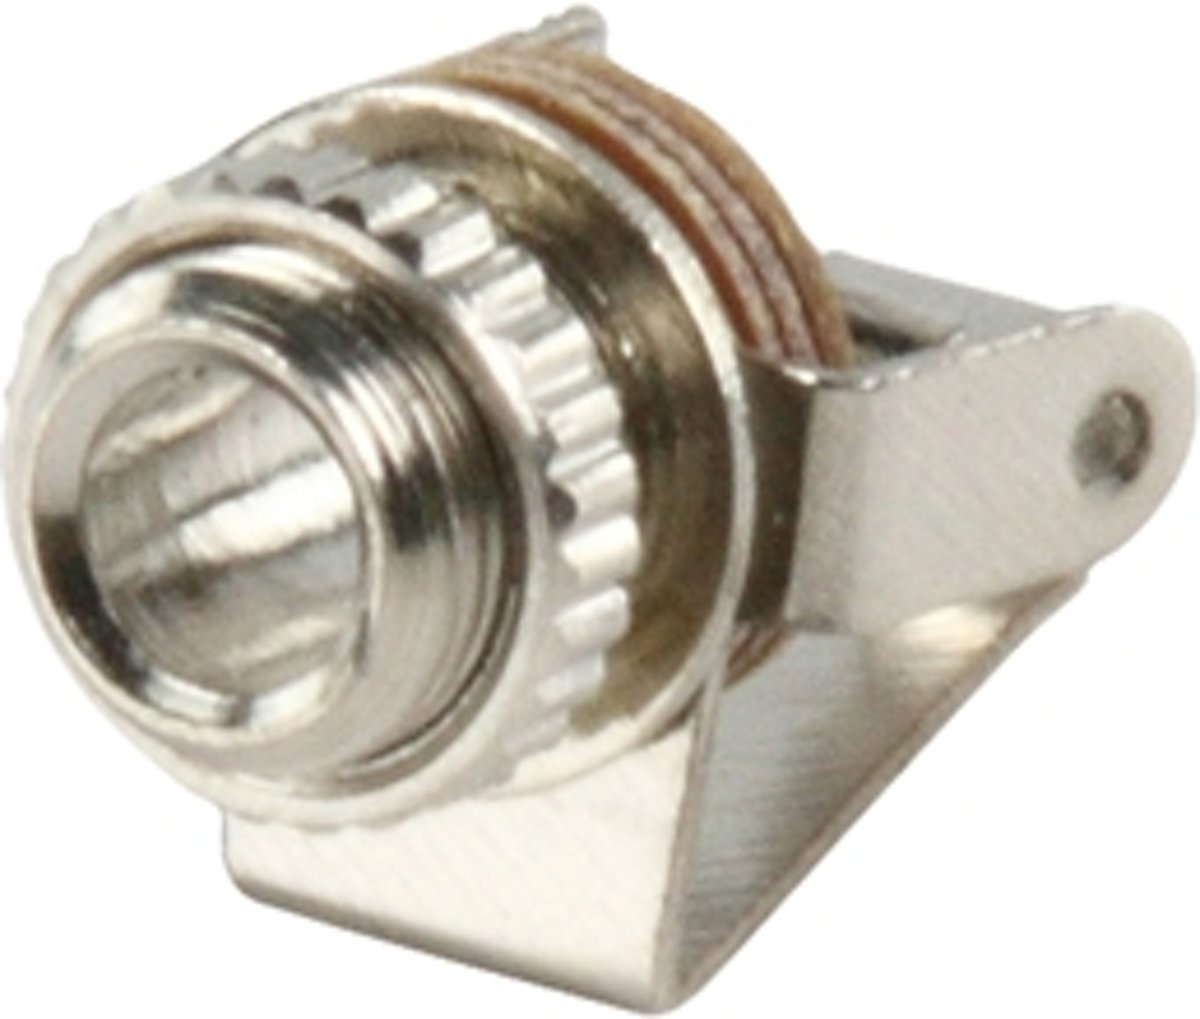 JC-022 3.5mm mono (F) Zilver kabel-connector